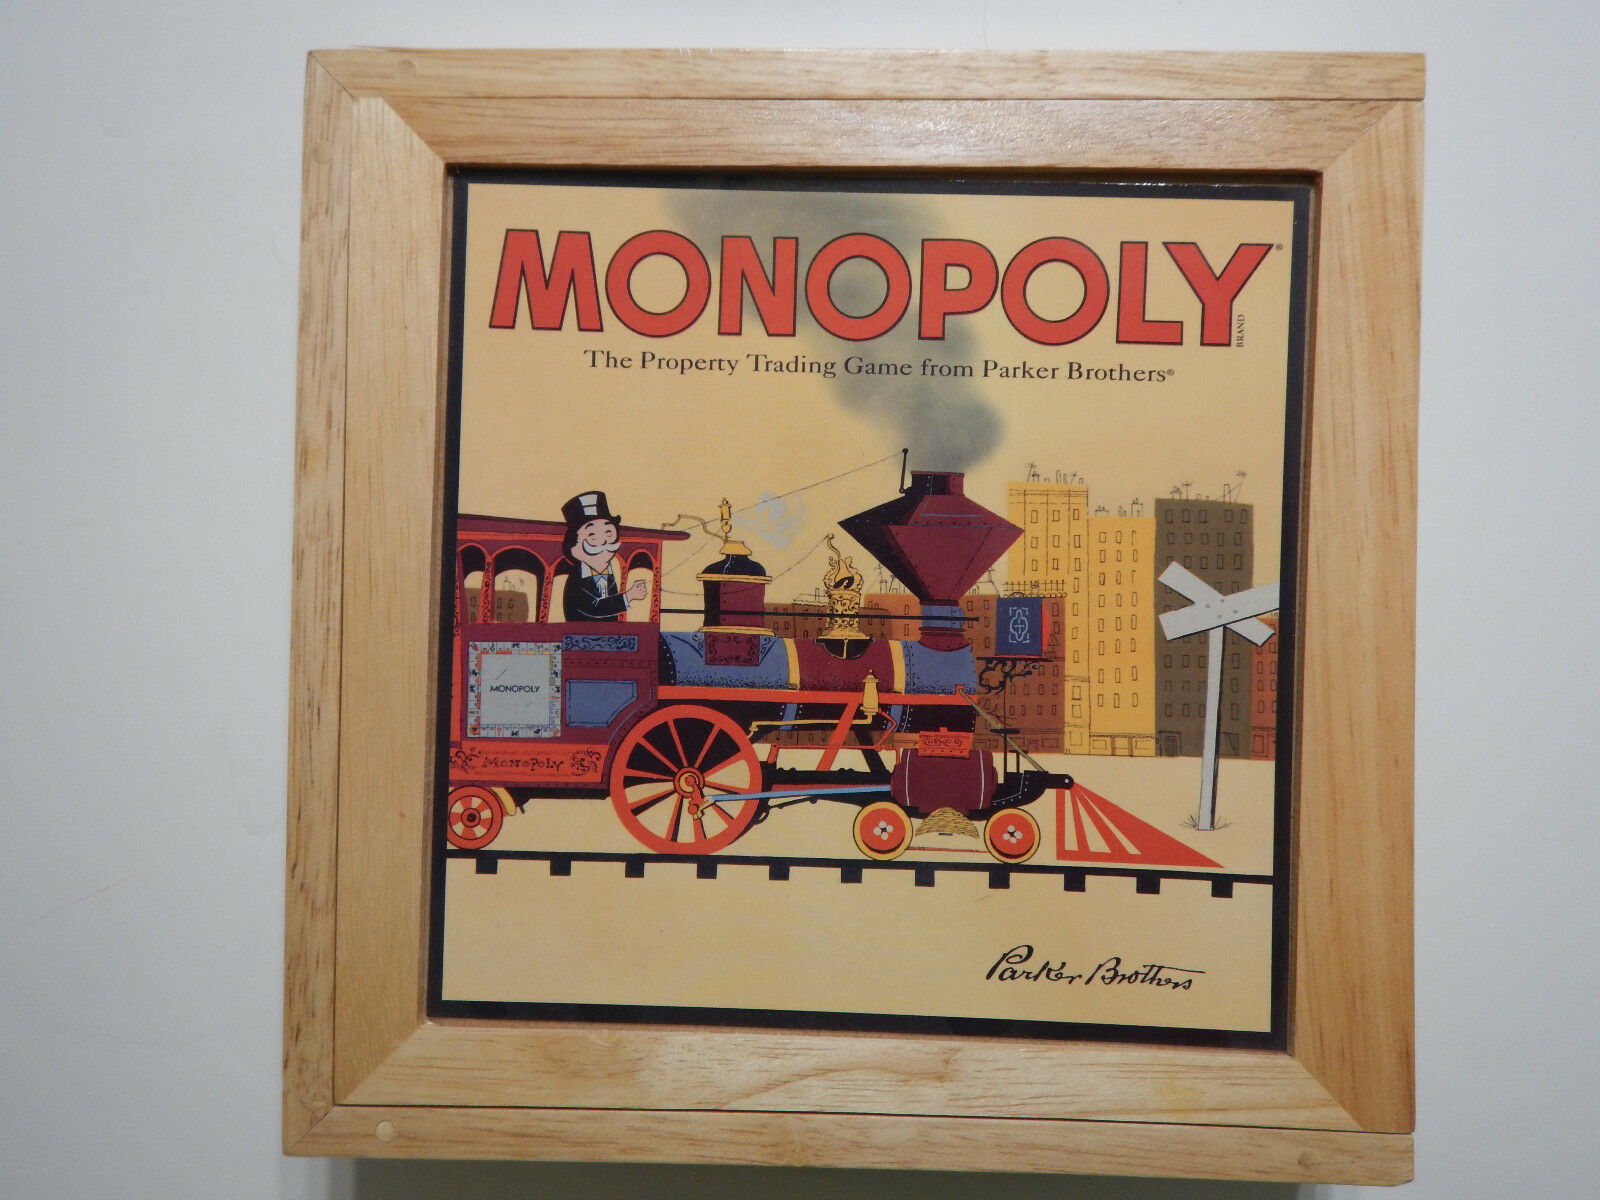 2001 Monopoly Board Game in Wood Box Nostalgia with Wooden Houses Used Complete